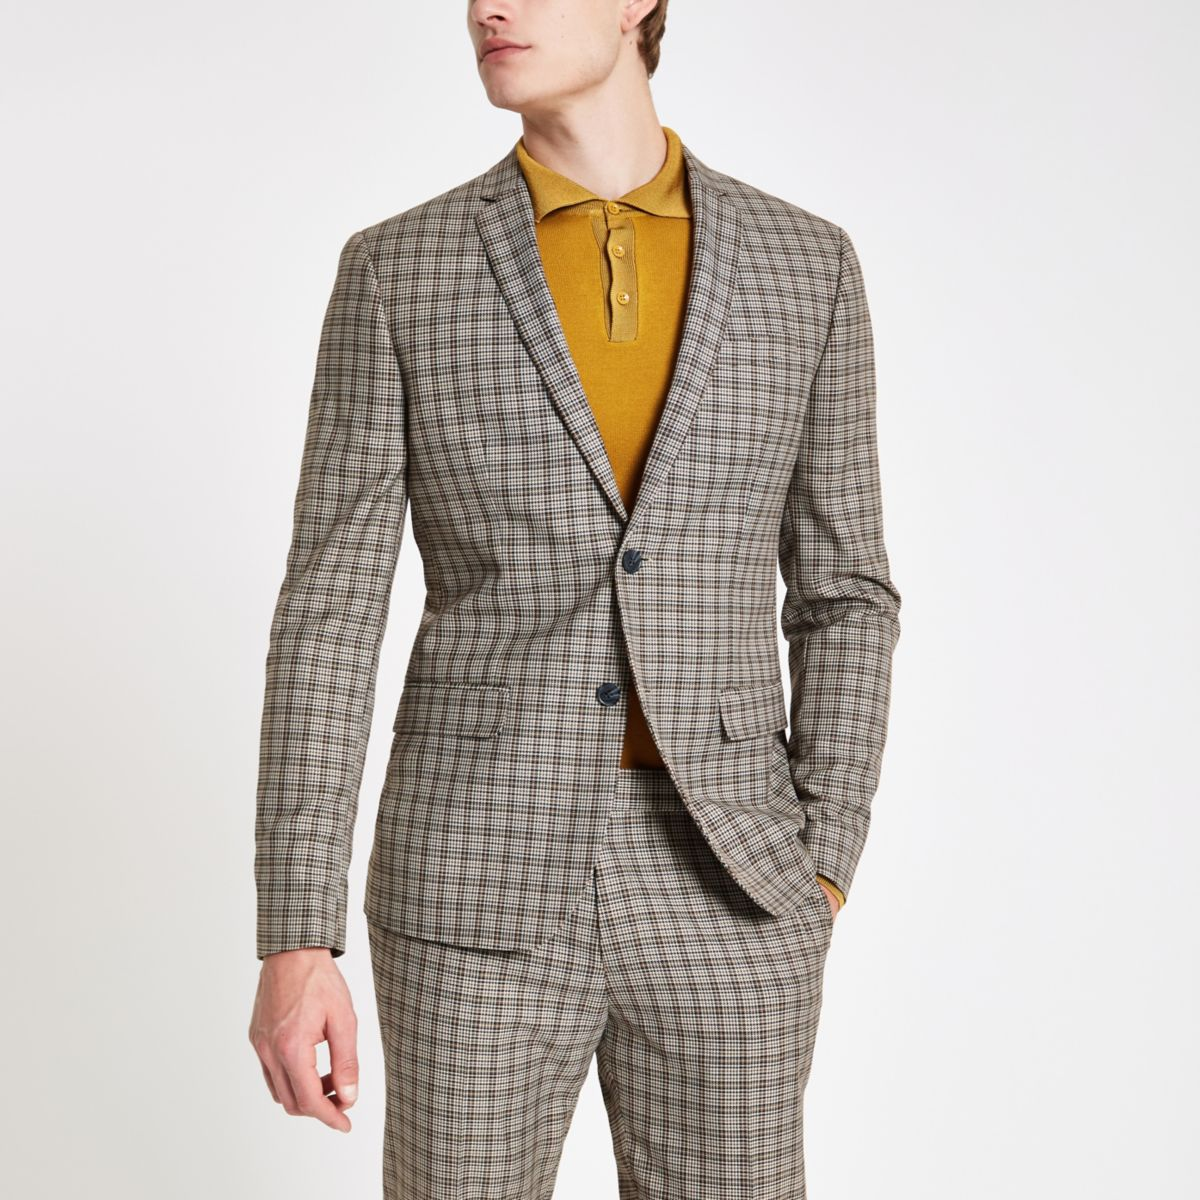 Olly Murs ecru check skinny fit suit jacket